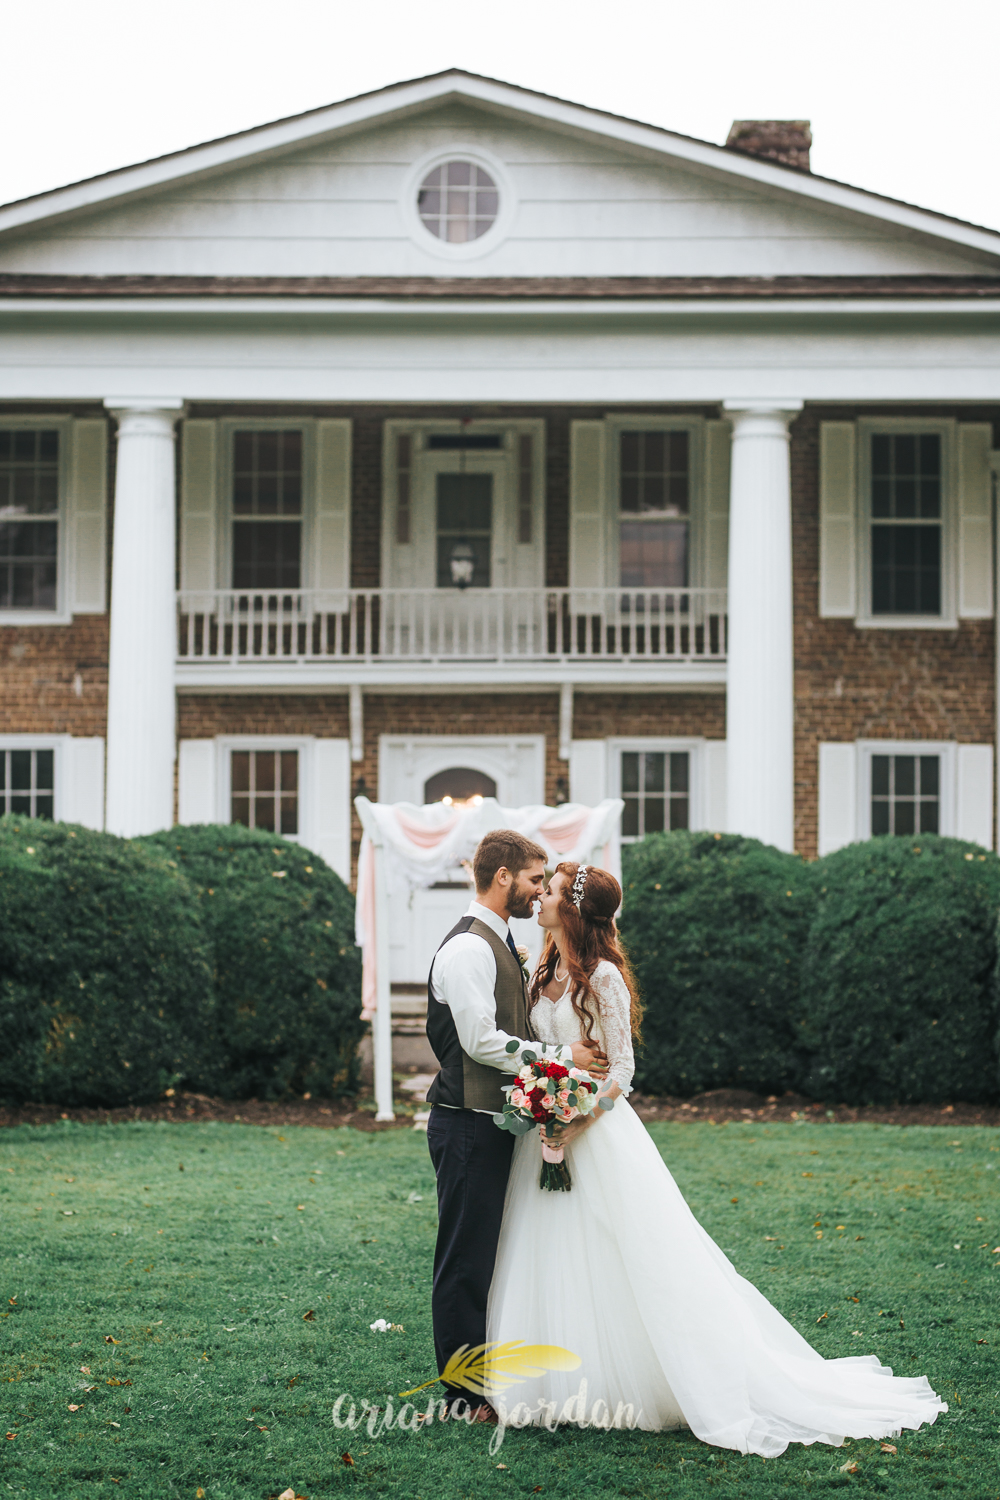 205 - Ariana Jordan - Kentucky Wedding Photographer - Landon & Tabitha_.jpg